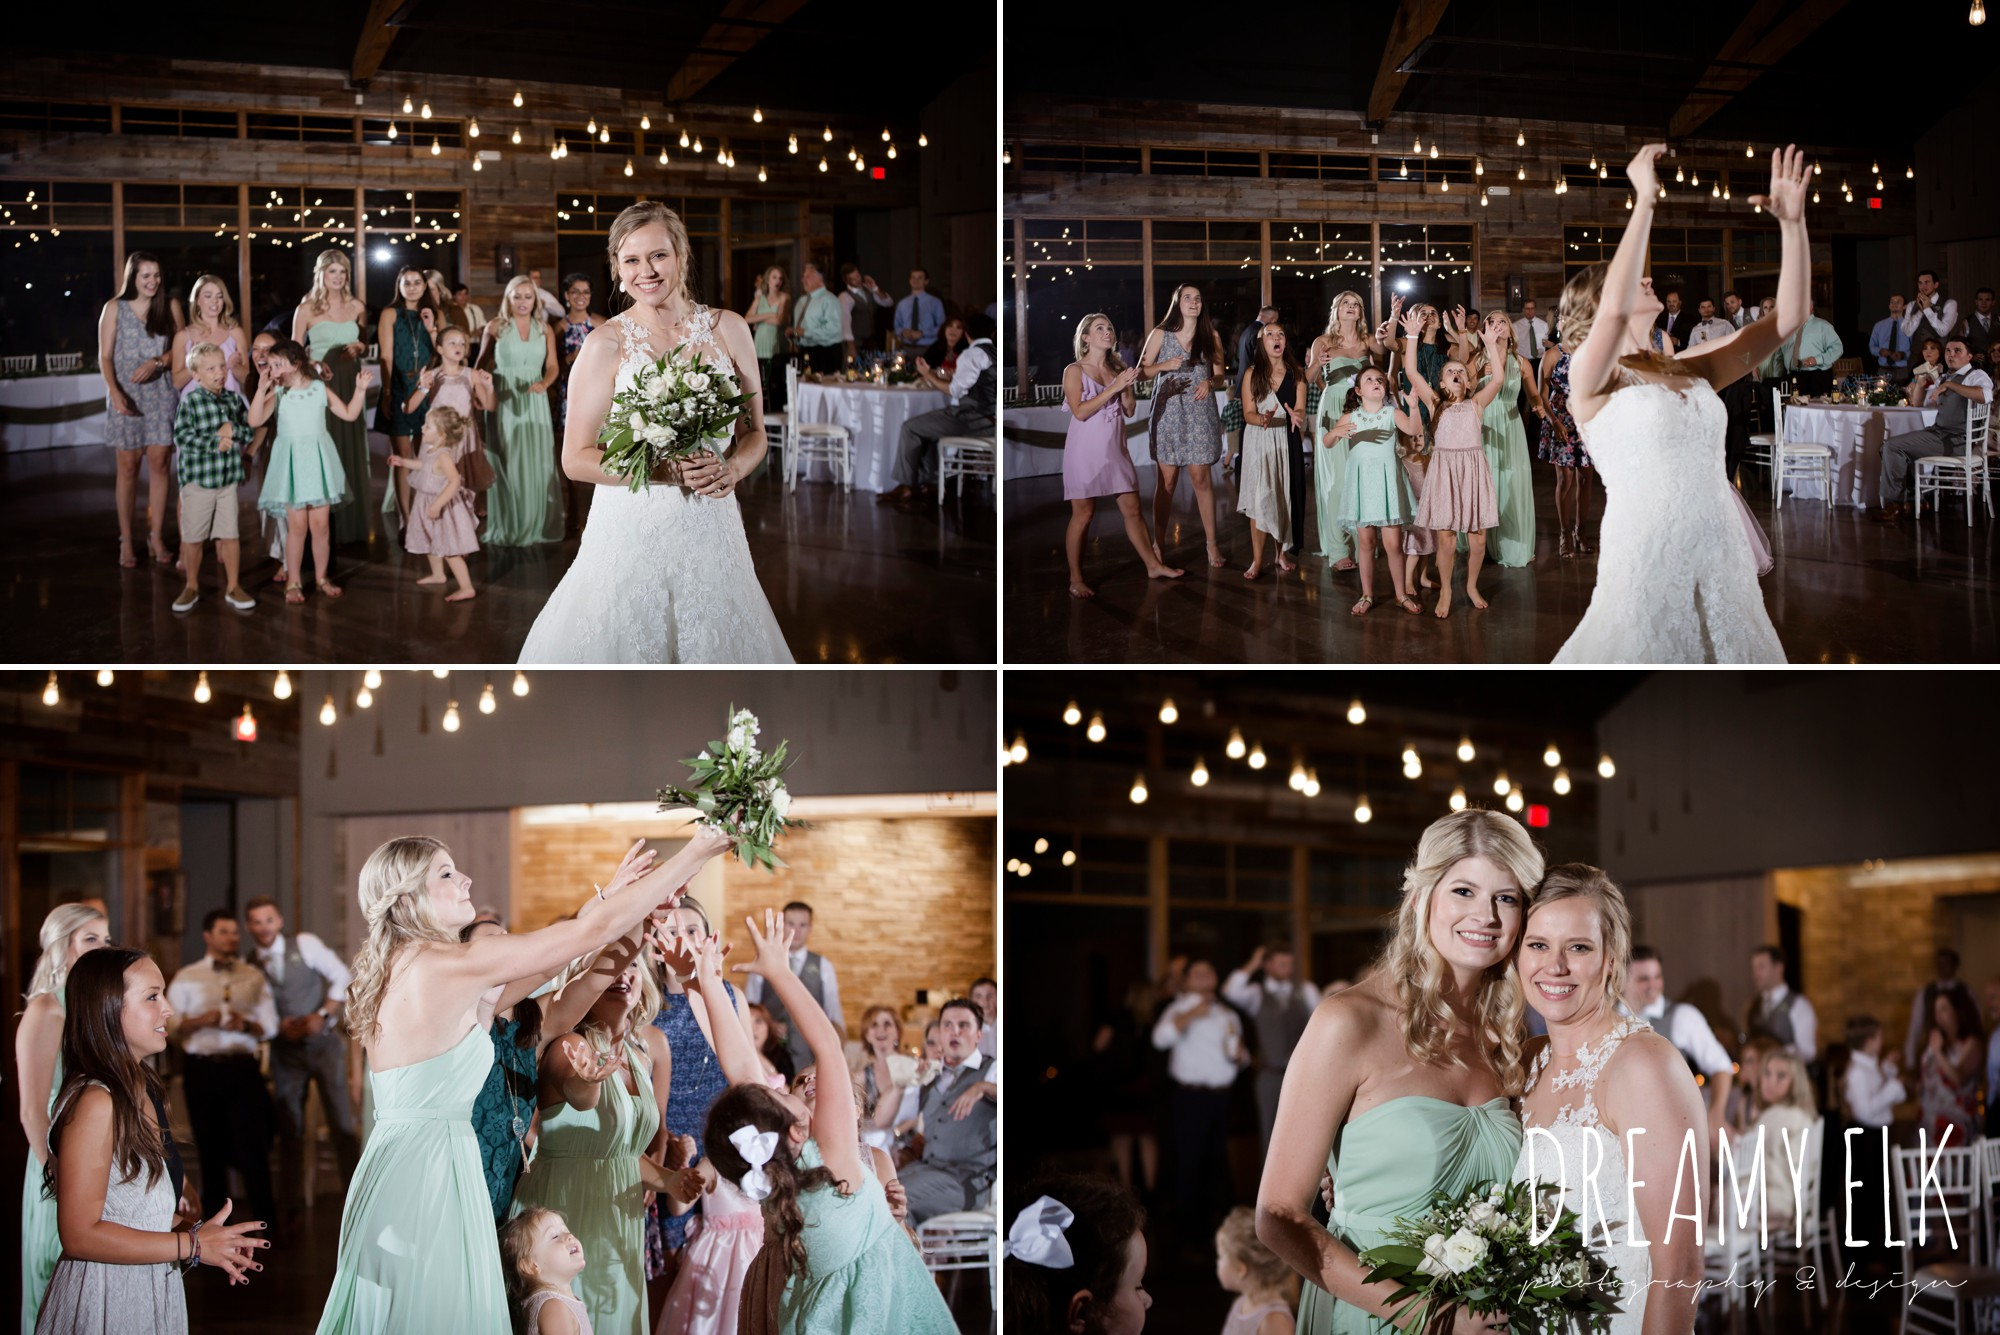 indoor wedding reception, bouquet toss, summer july wedding photo, canyonwood ridge, dripping springs, texas {dreamy elk photography and design}